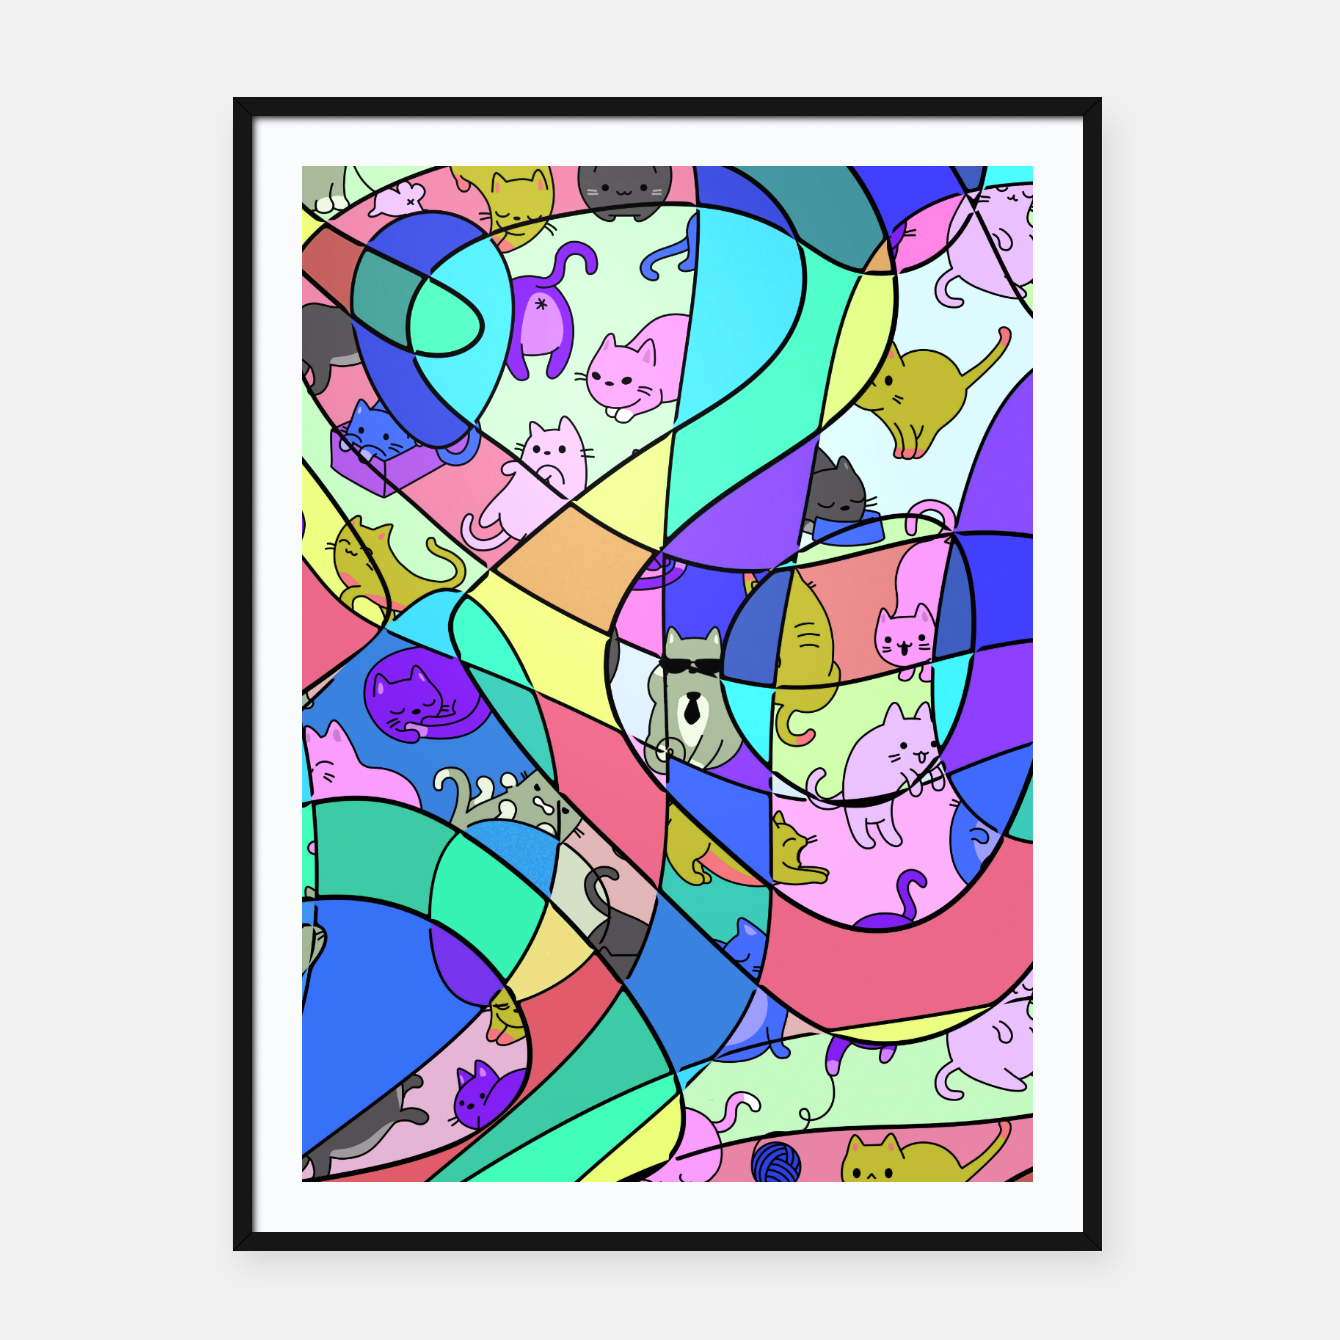 Foto Colored Squiggly Loops with Funny Cats Pattern II Plakat mit rahmen - Live Heroes